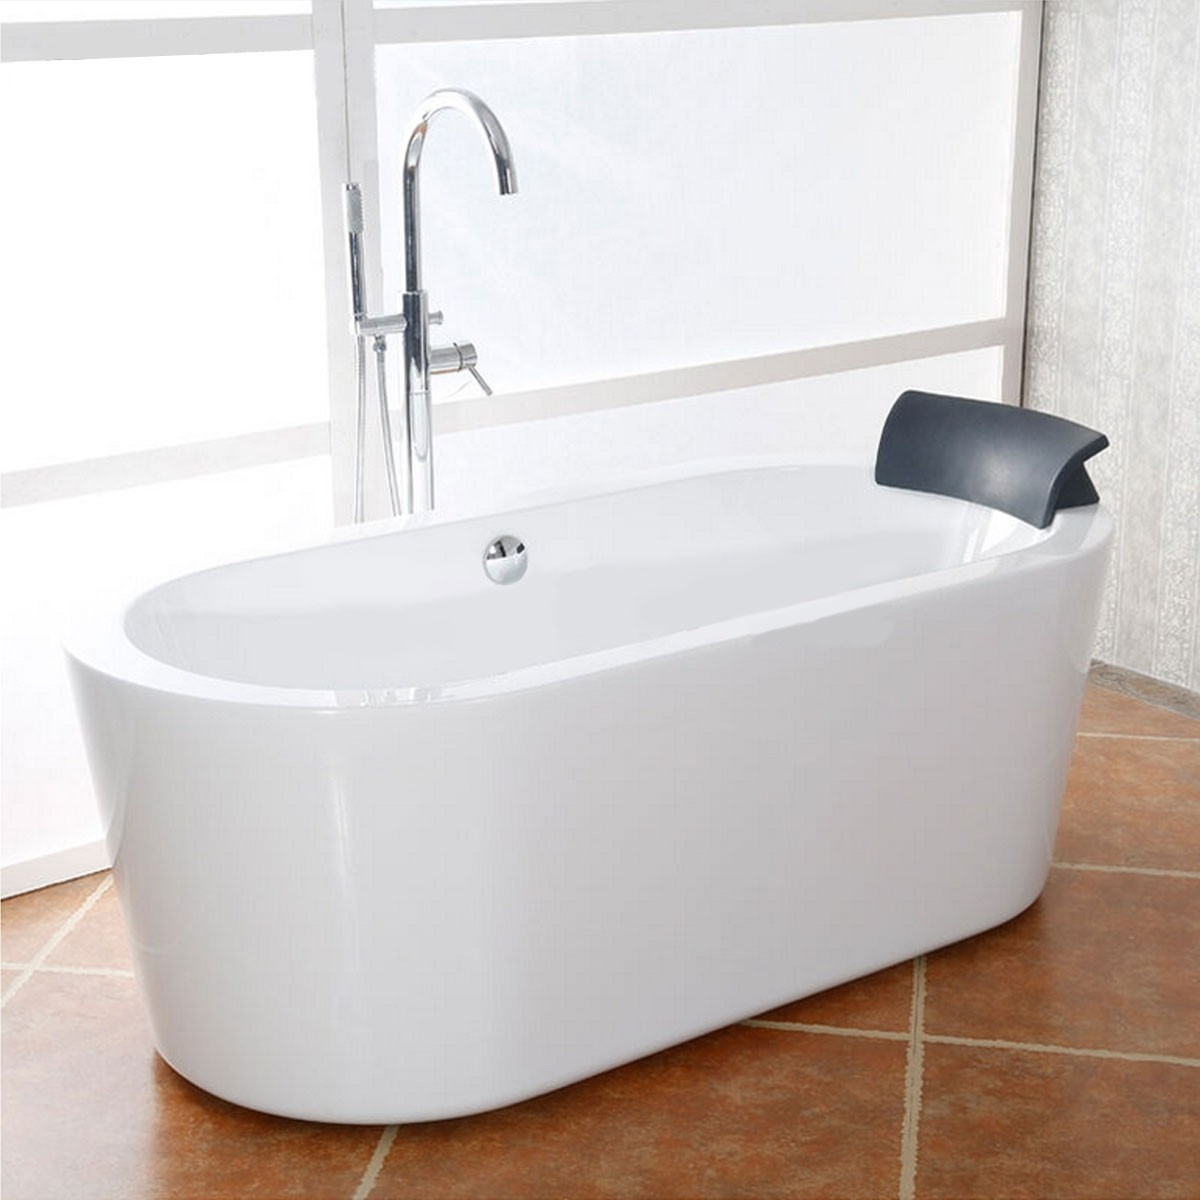 65 In Seamless White Acrylic Freestanding Bathtub (DK-AT-1682)